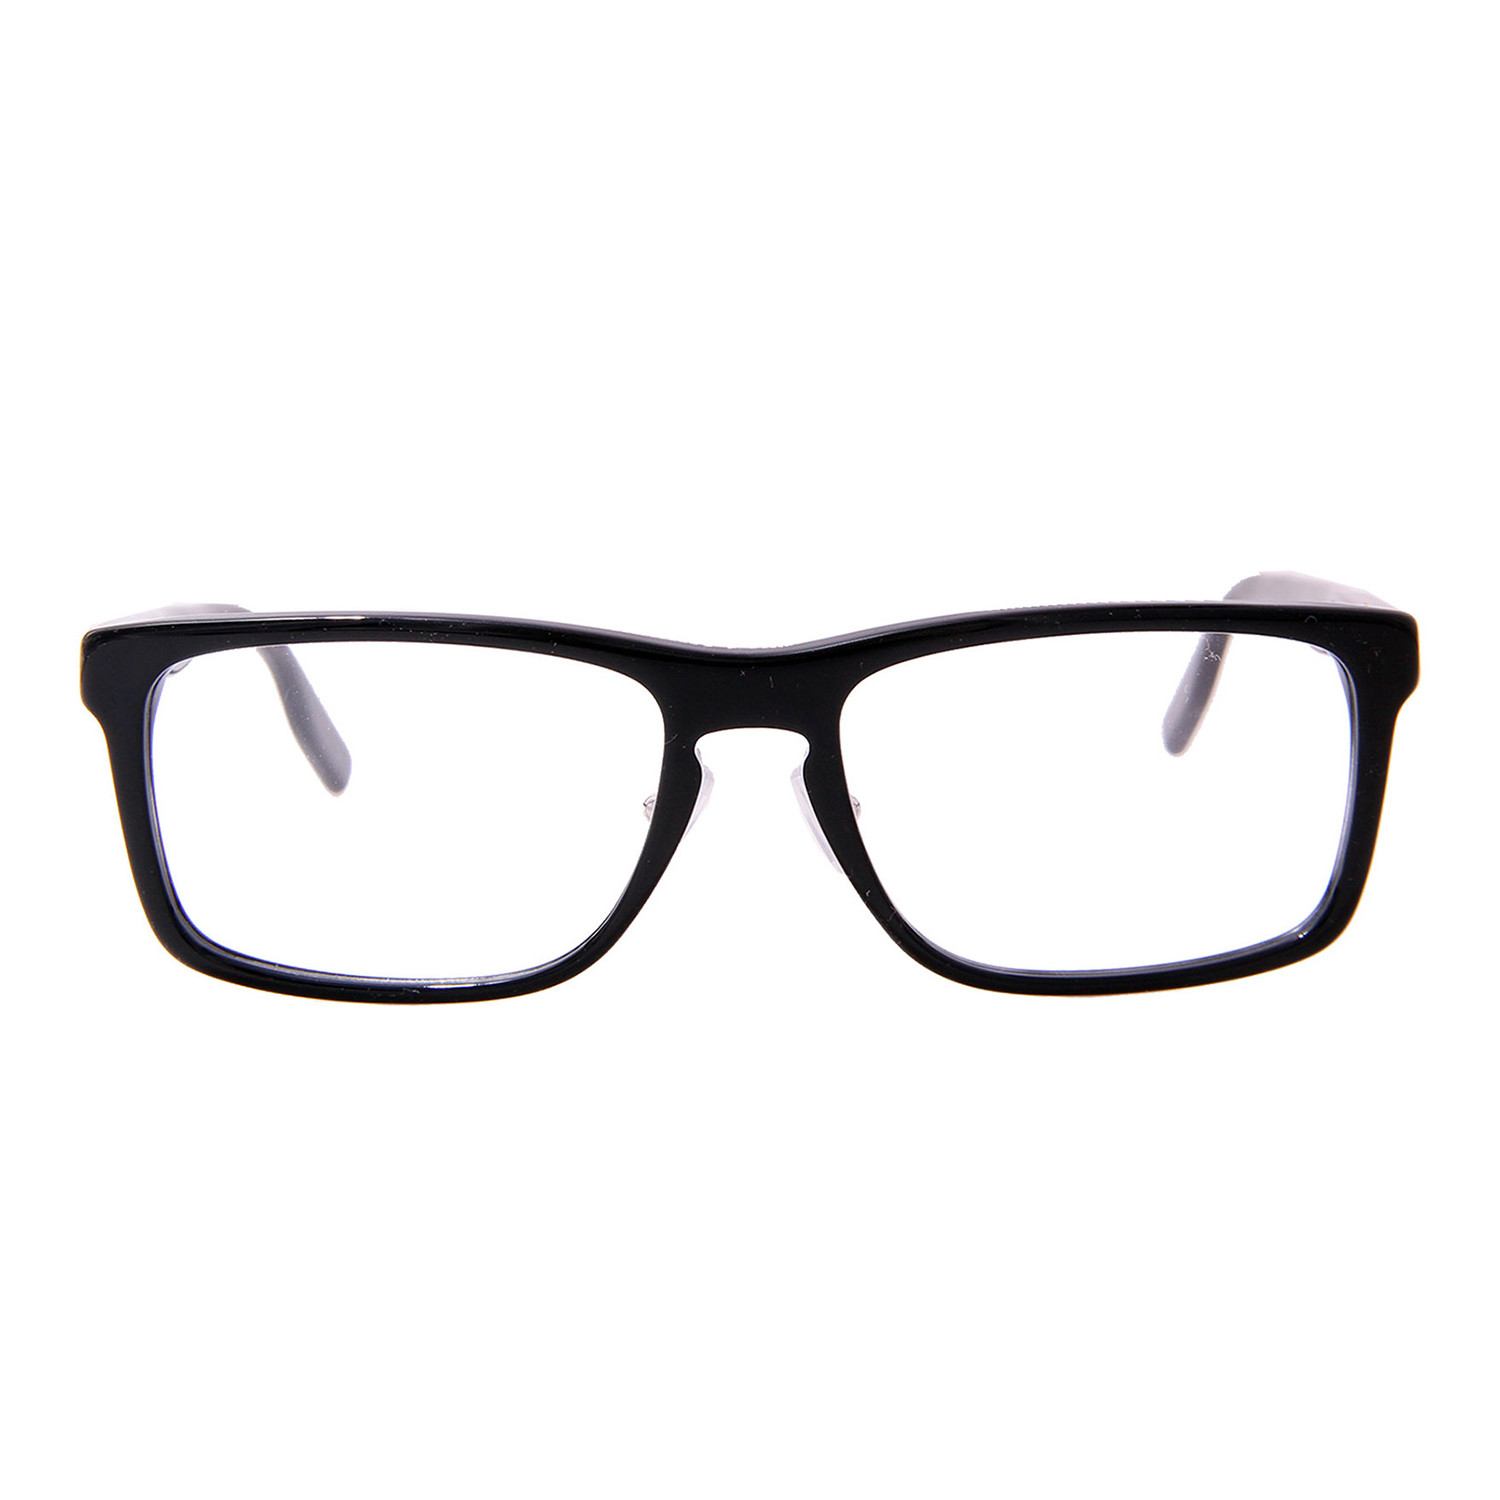 hugo boss optical frames hugo boss 0463 0807